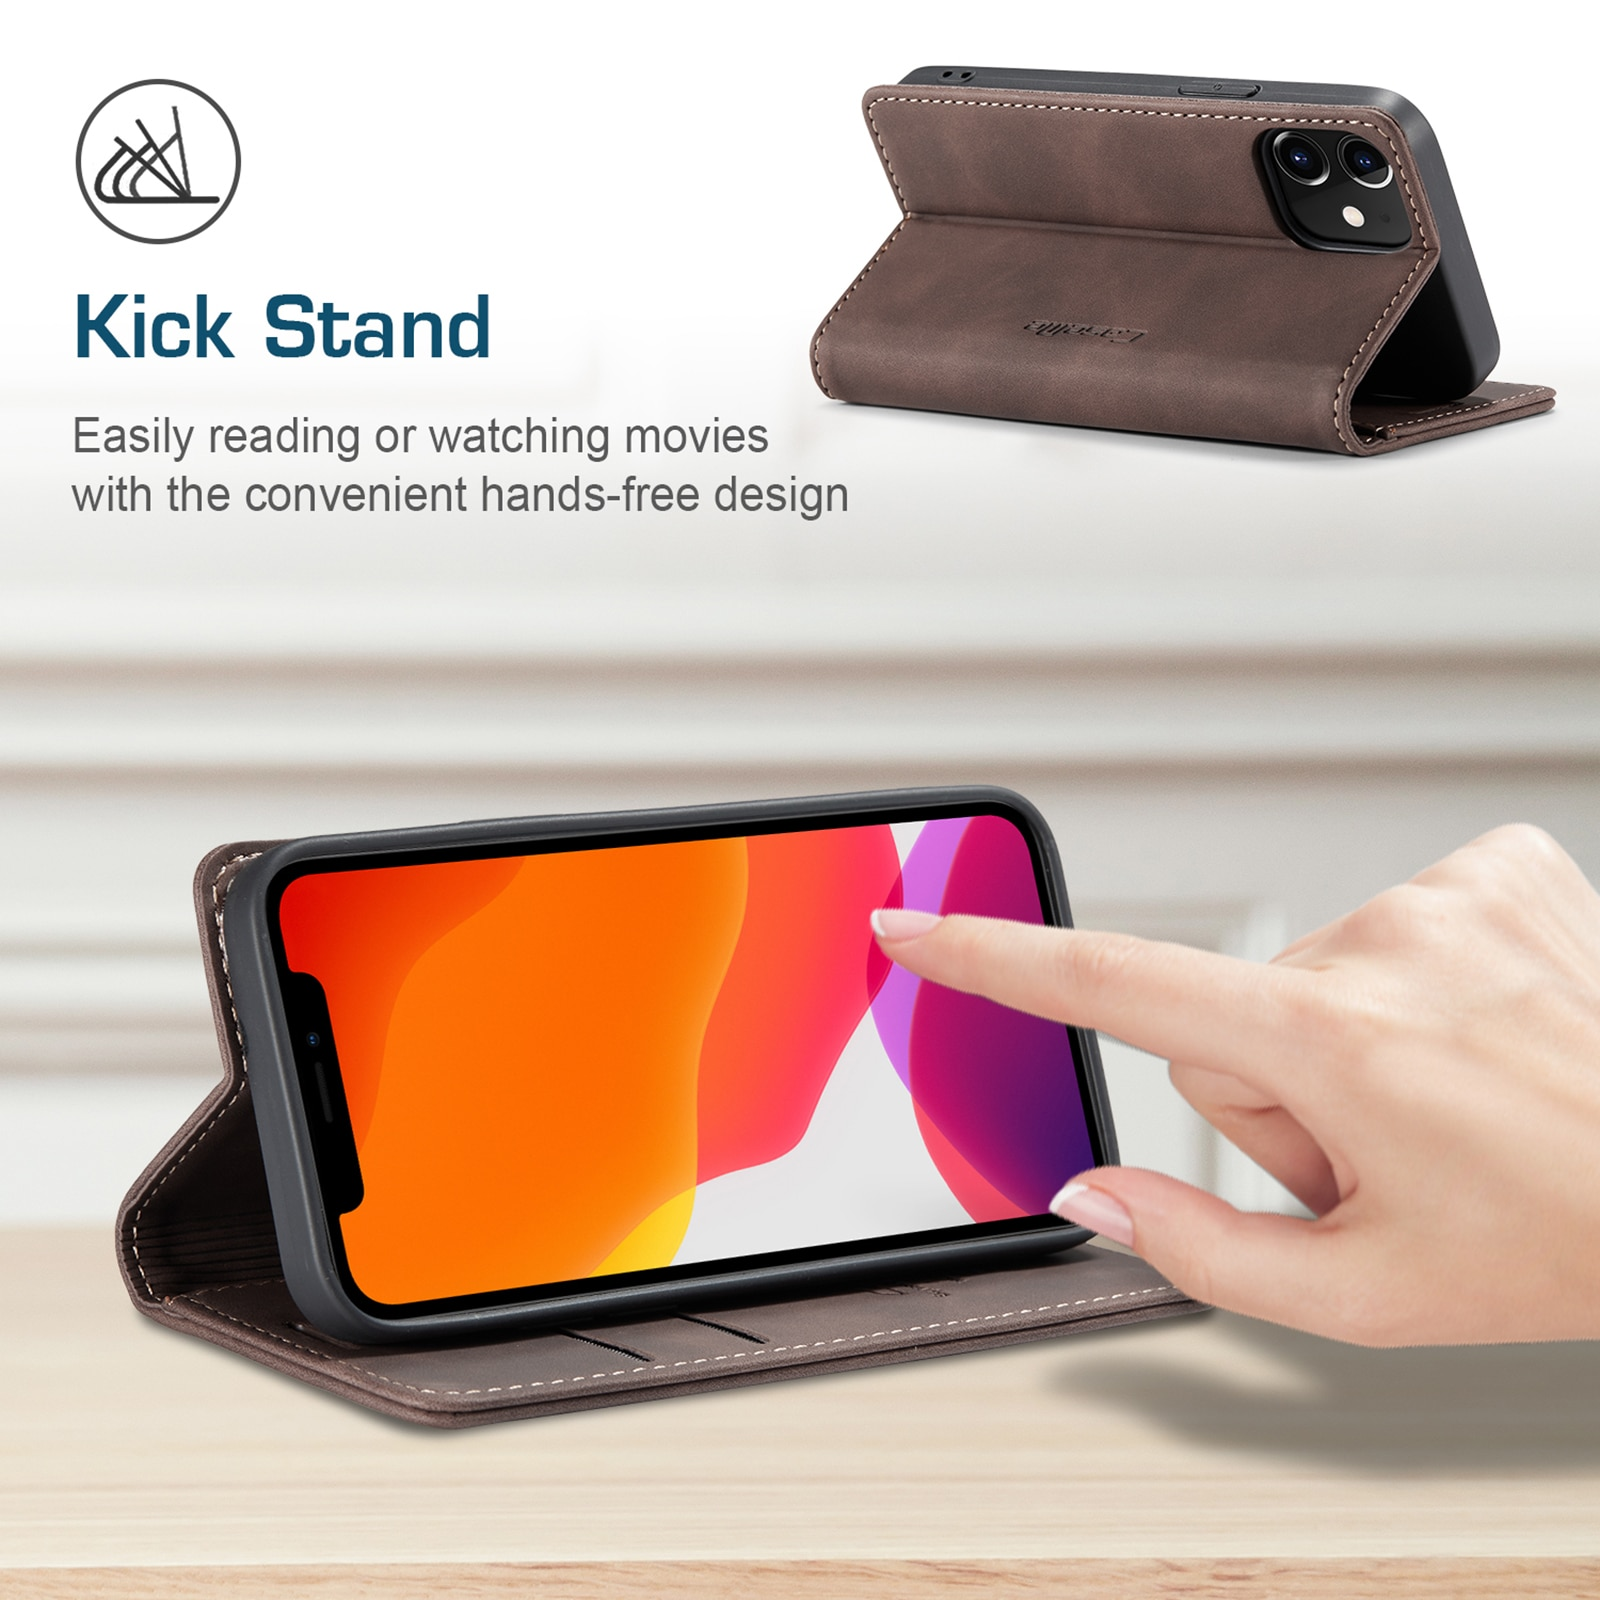 H8c87554c9d42470f9cf6410827d724aaE - Magnetic Leather Flip Case For iPhone 12 / Pro / Pro Max PU Leather Fitted Bumper Soft Retro Flip Case Book Wallet Cover